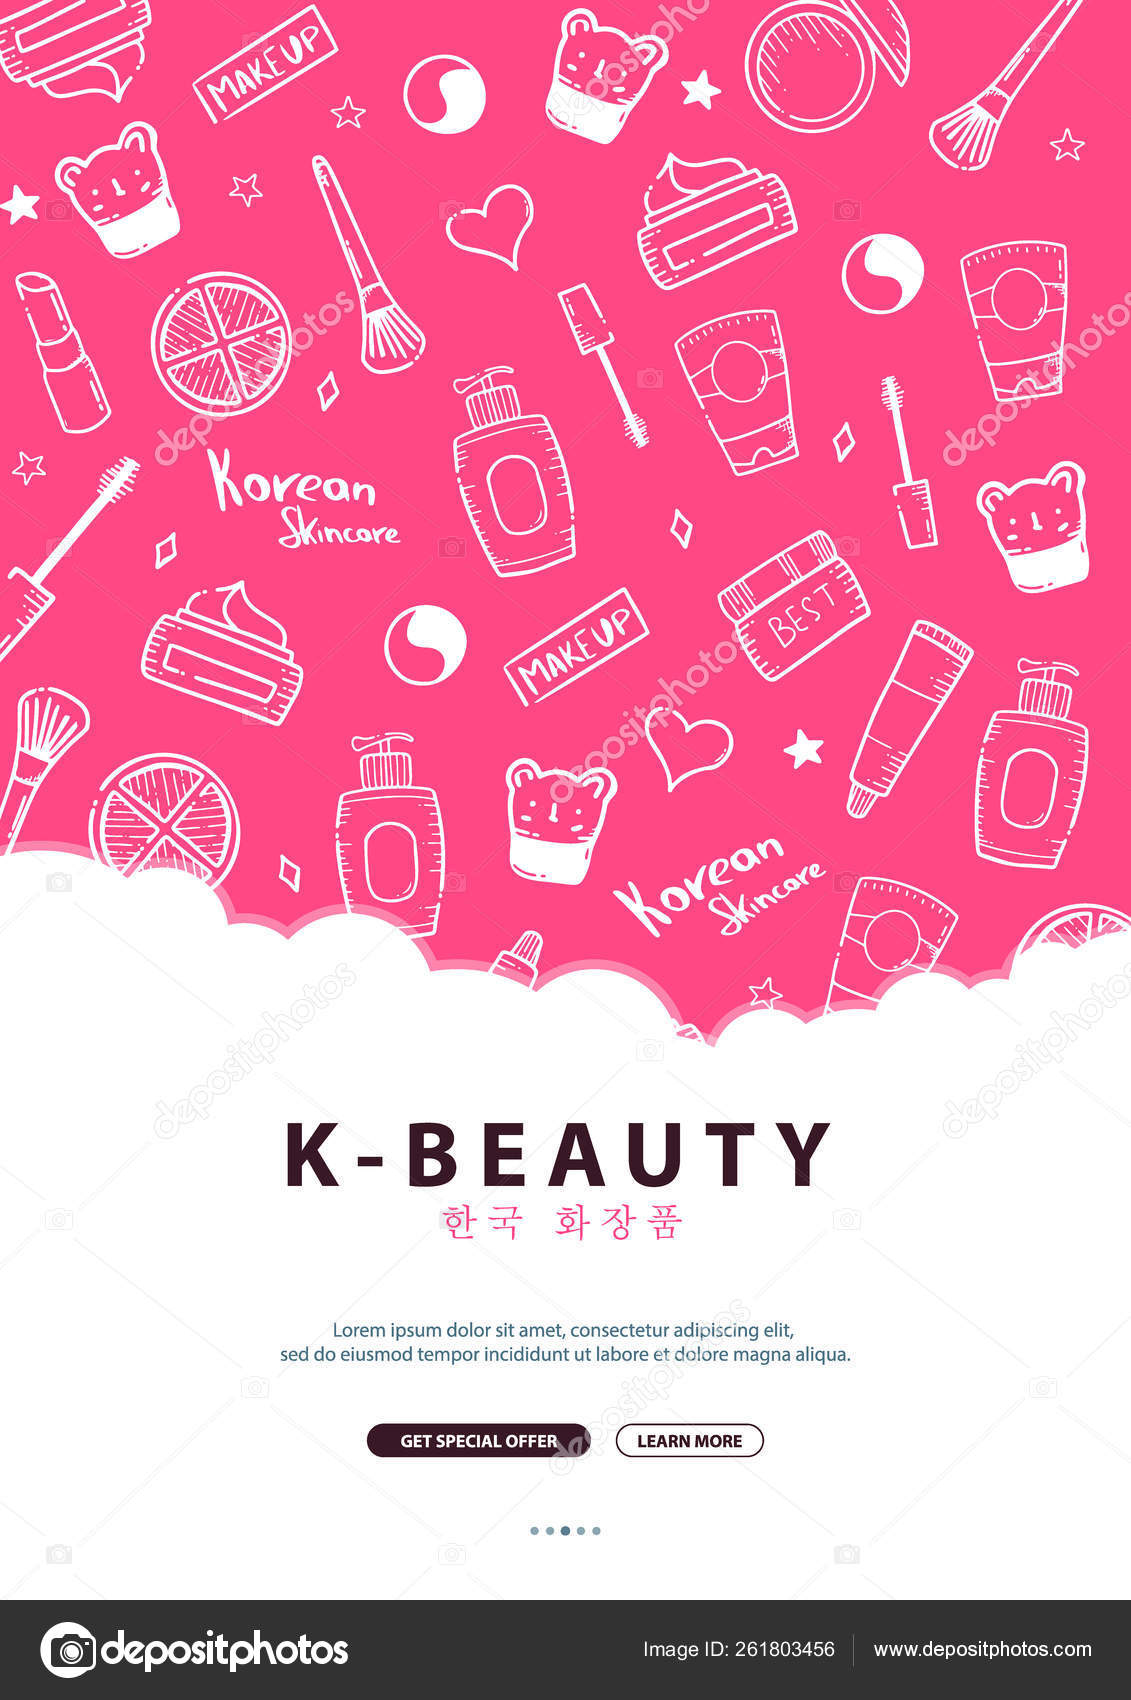 Korean Cosmetics K Beauty Banner With Hand Draw Doodle Background Skincare And Makeup Translation Korean Cosmetics Vector Illustration Stock Vector C Leo Design 261803456